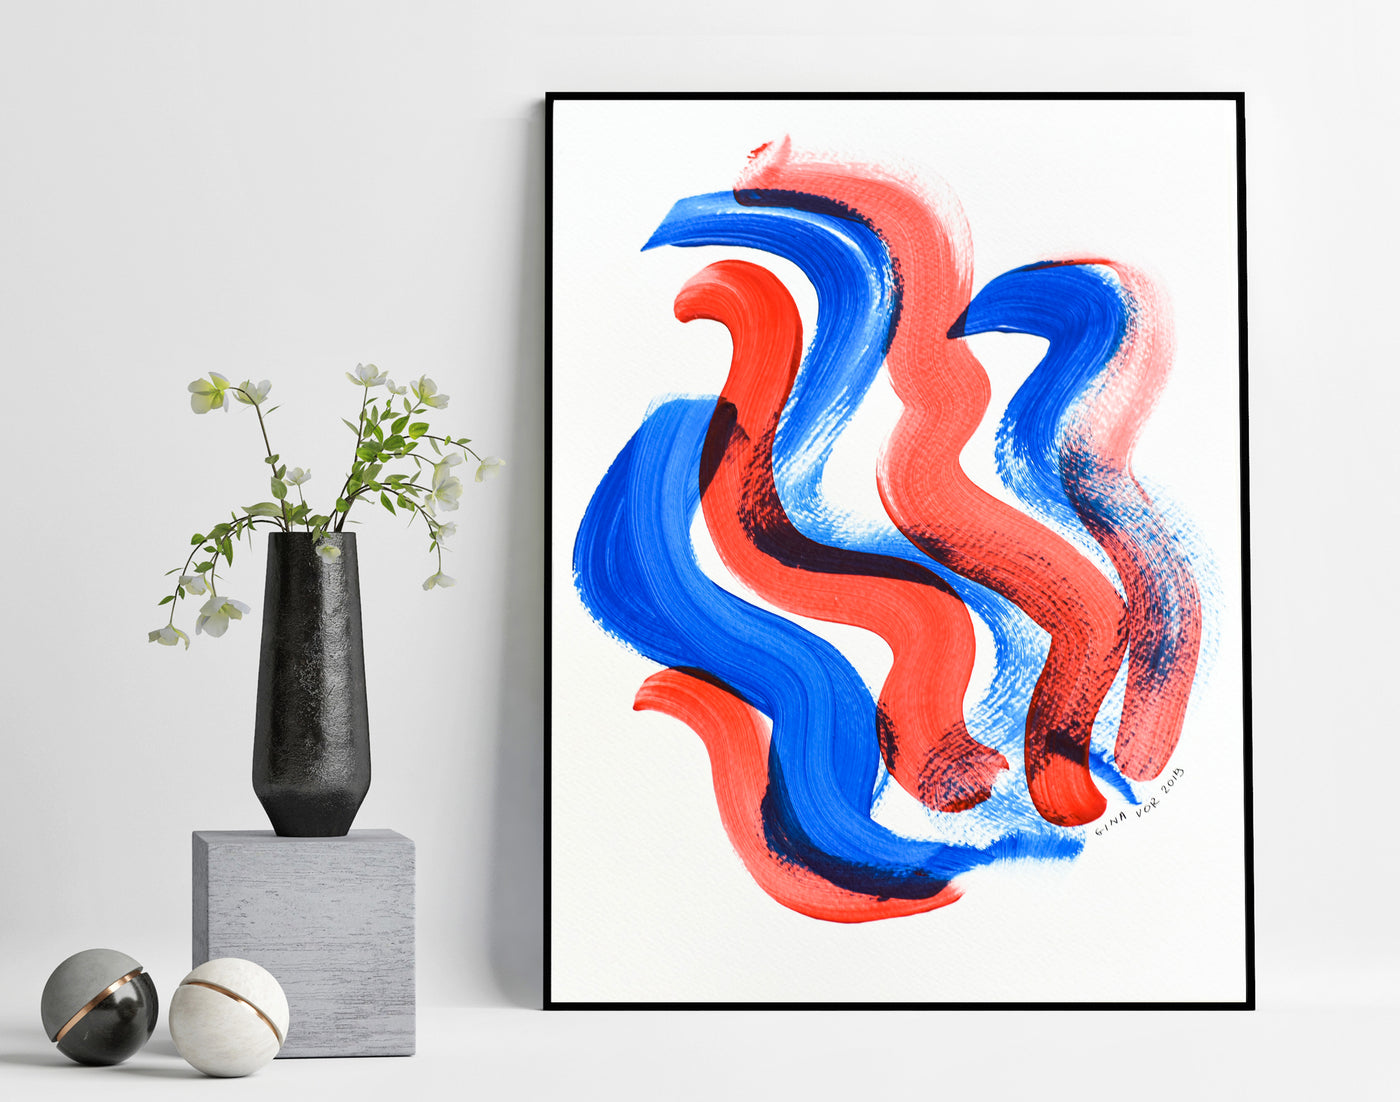 Minimalist abstract wall art - blue and red painting on paper for sale online